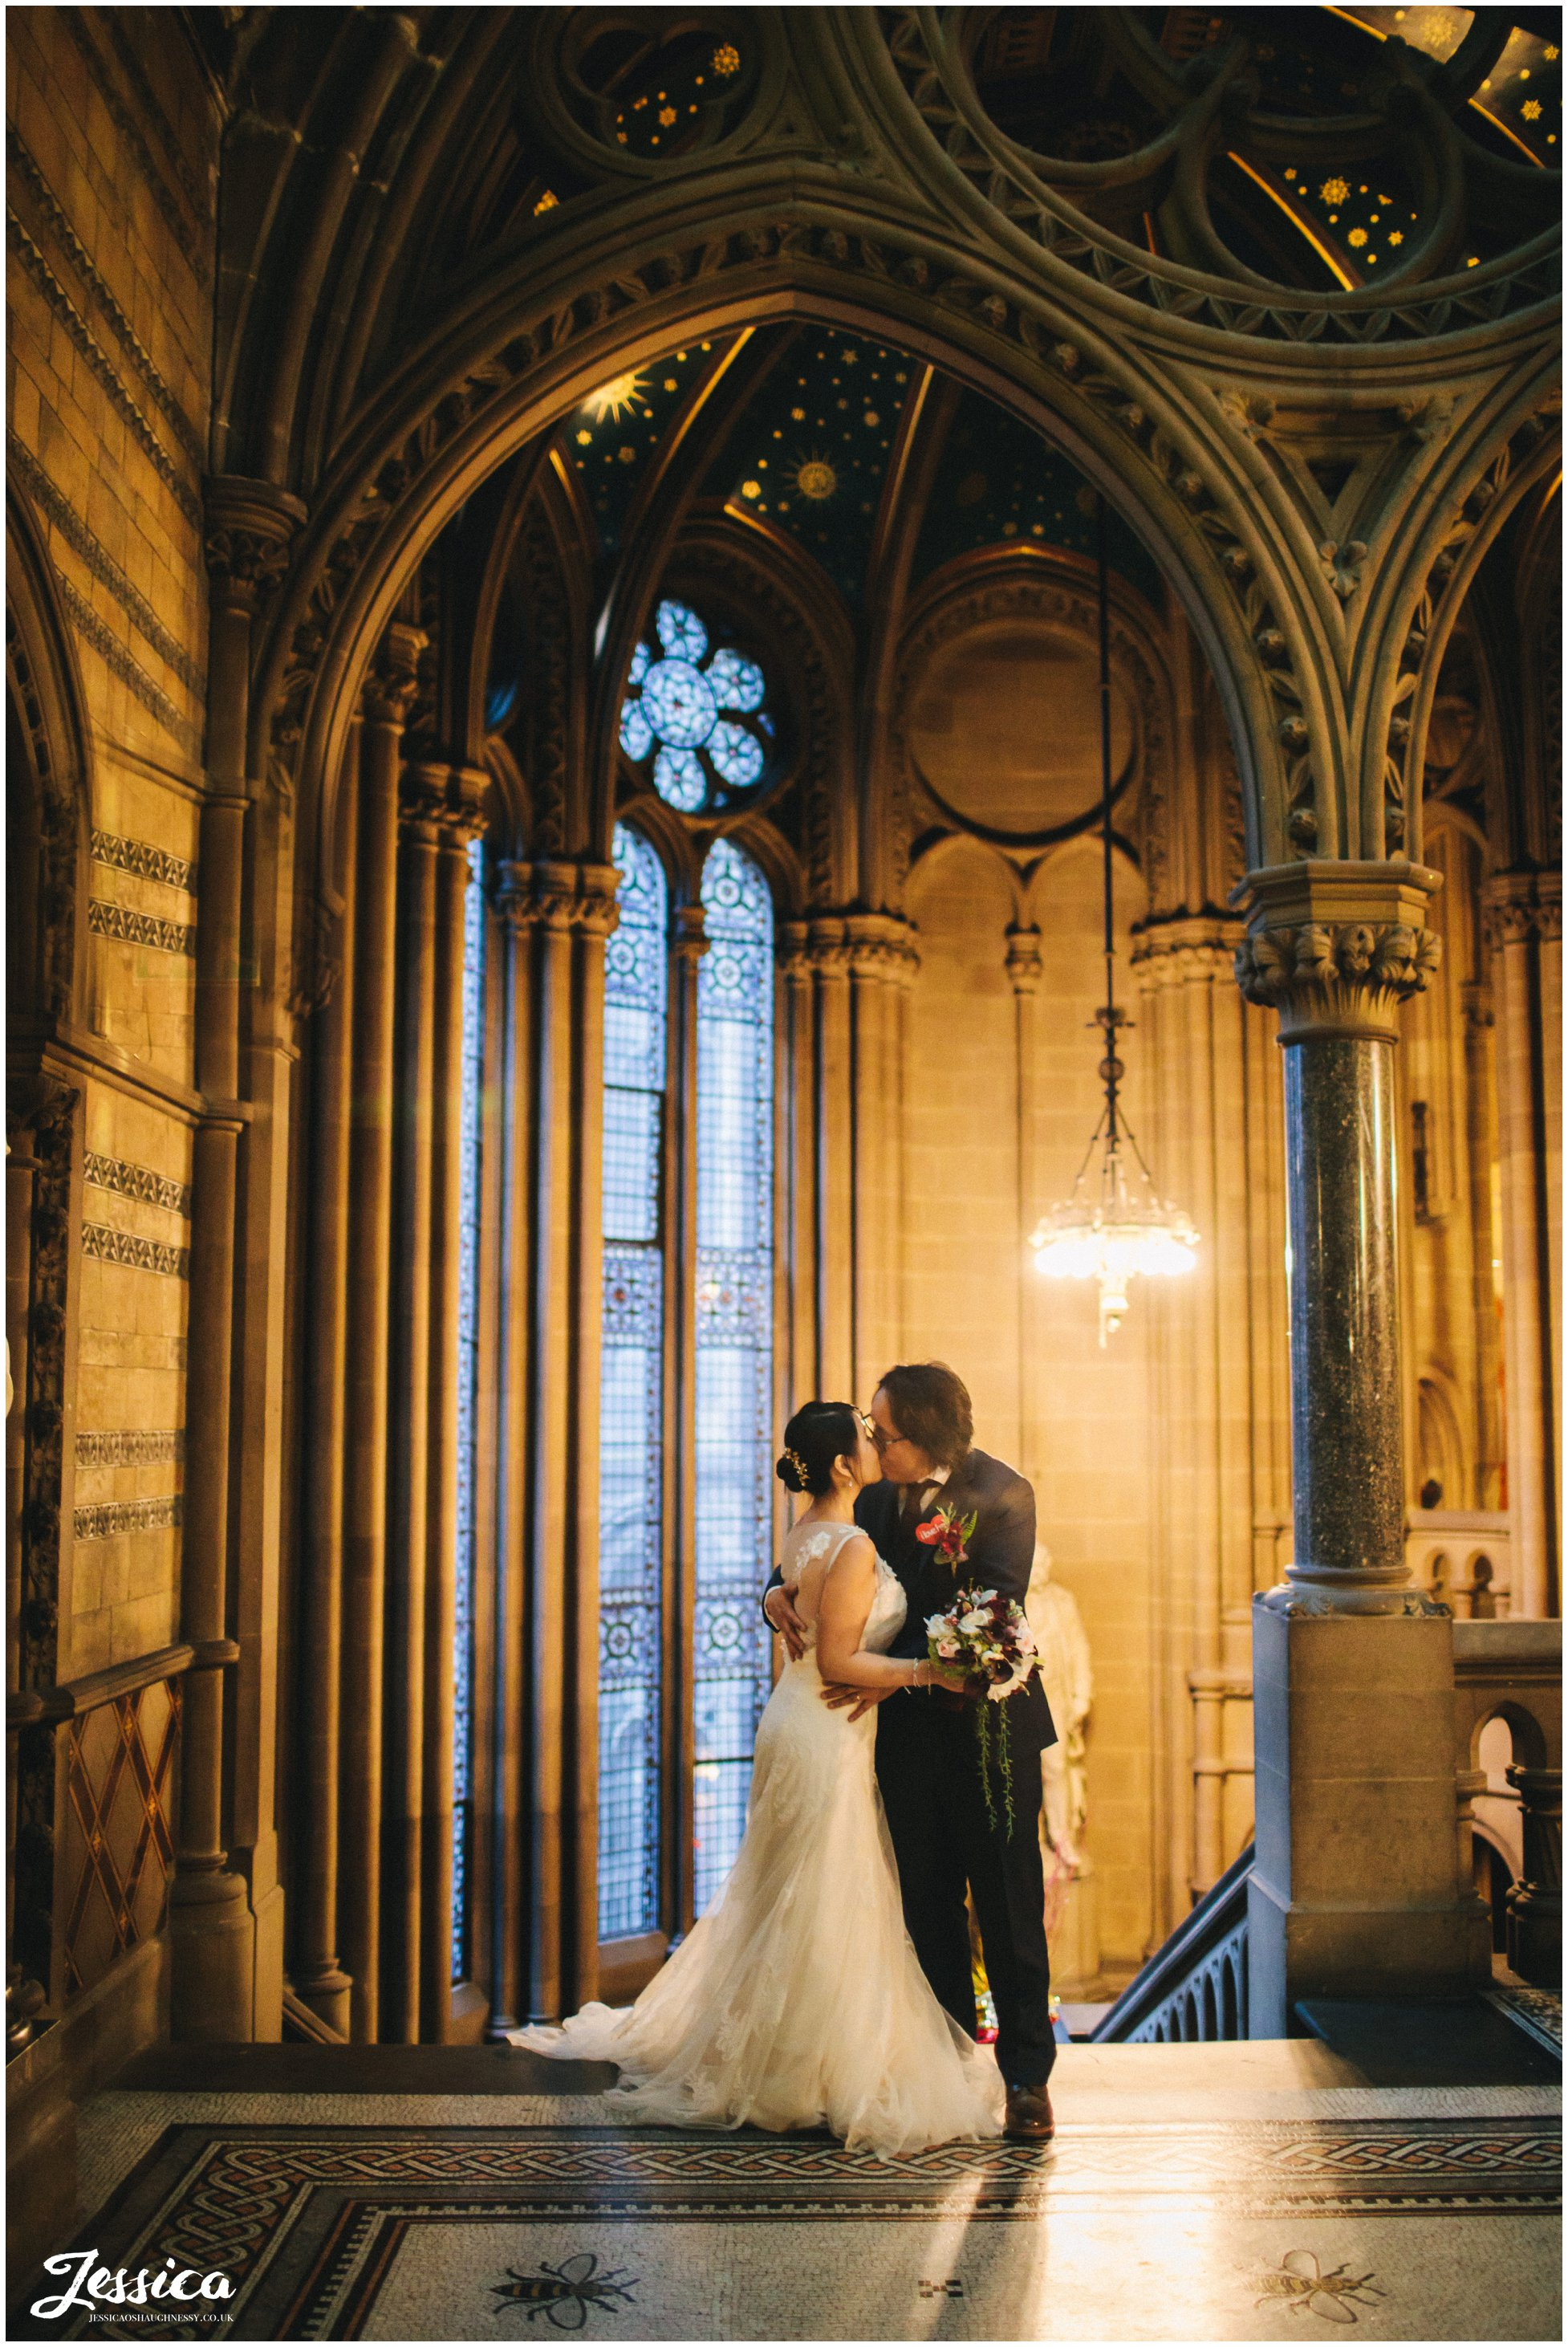 newly wed's kiss on the stairs of manchester town hall in the evening